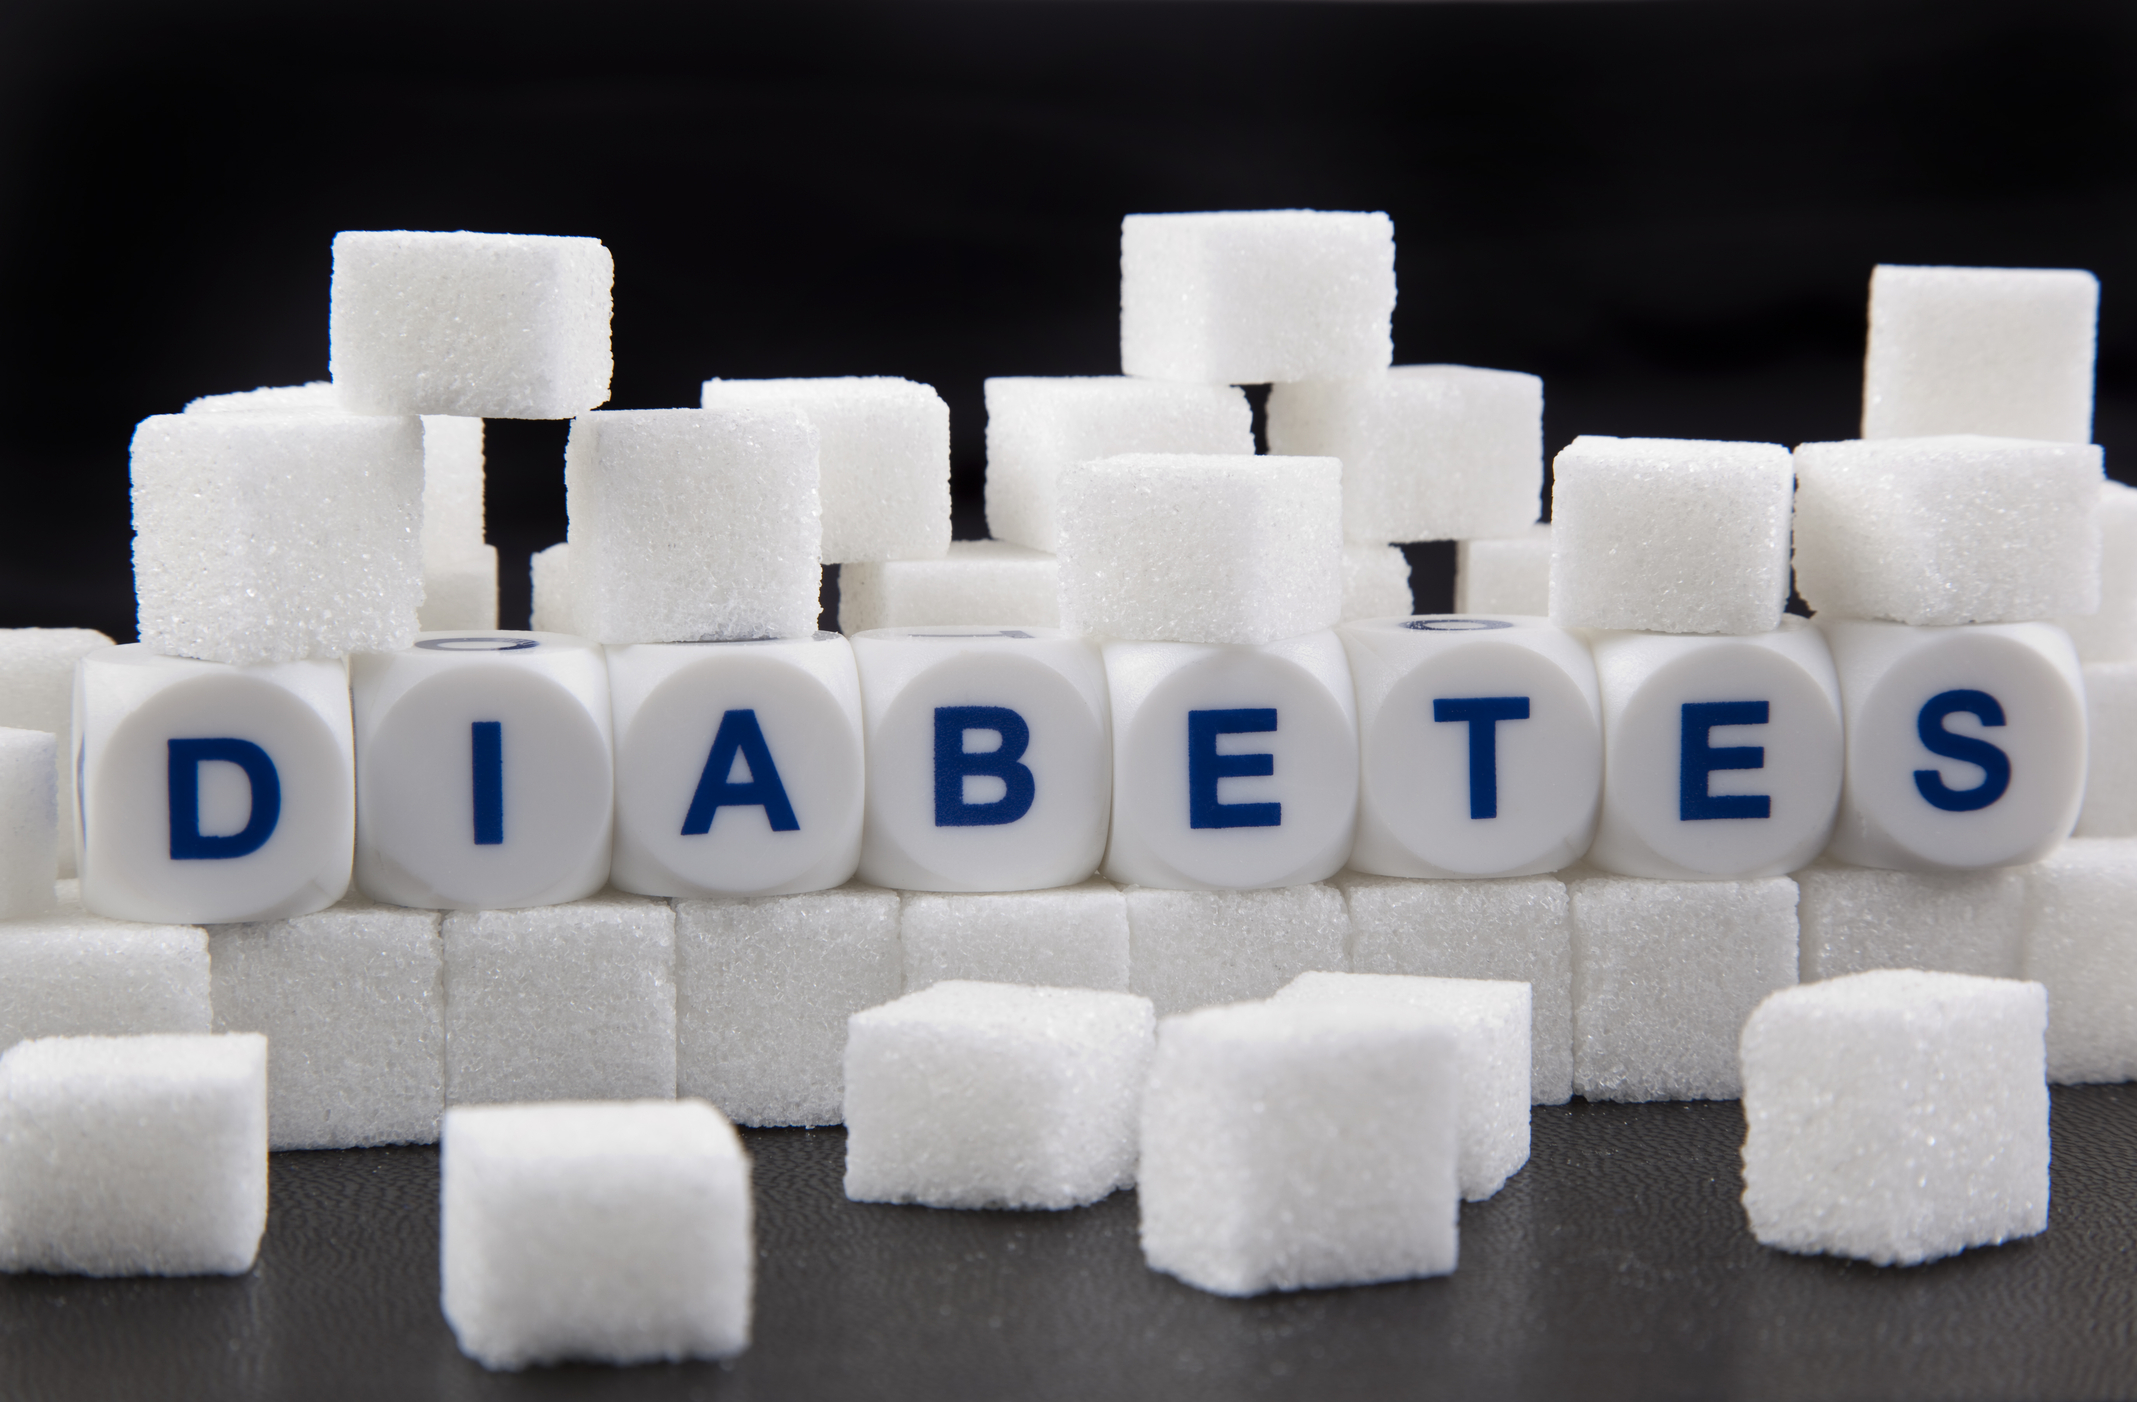 A Natural Diabetes Treatment That Works!